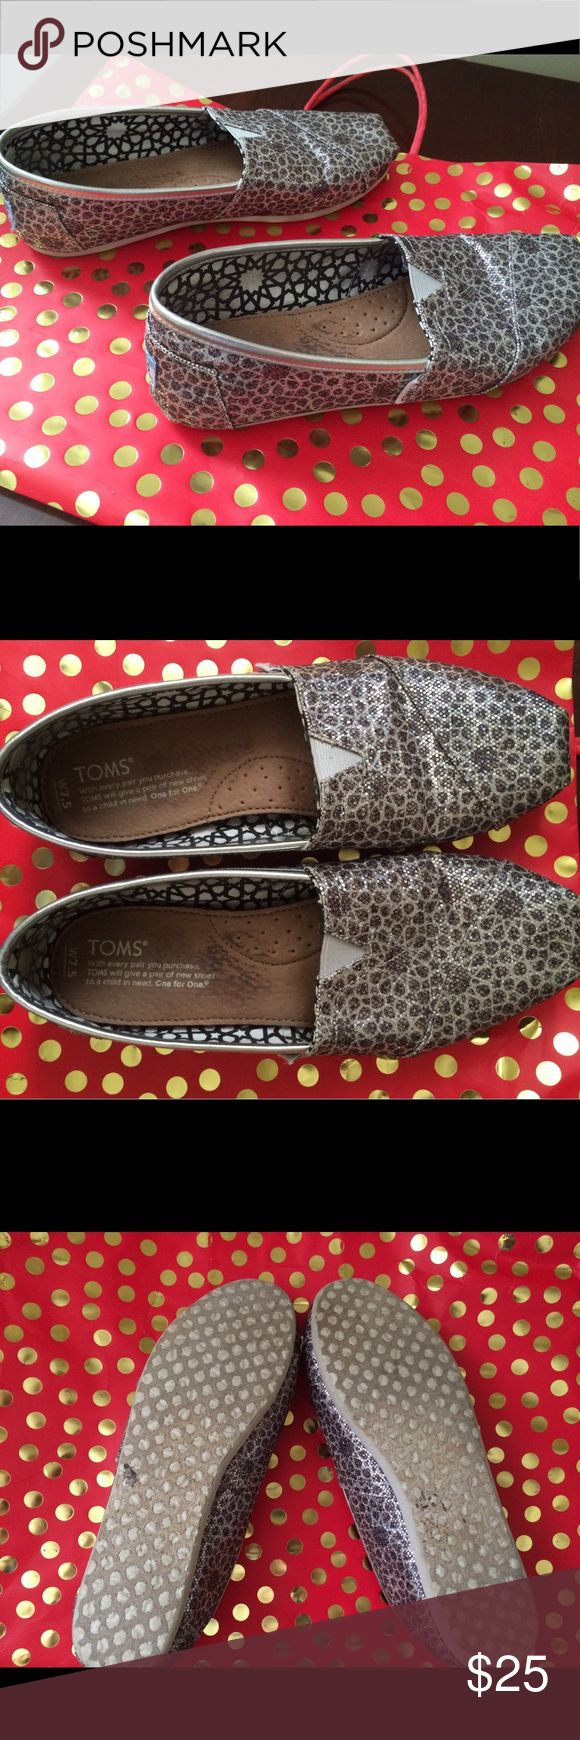 Cute Sparkly Leopard Toms Shoes Size 7.5. In great condition. There is a tiny inspection near the heel of the right shoe ( see pic ). Toms Shoes Flats & Loafers